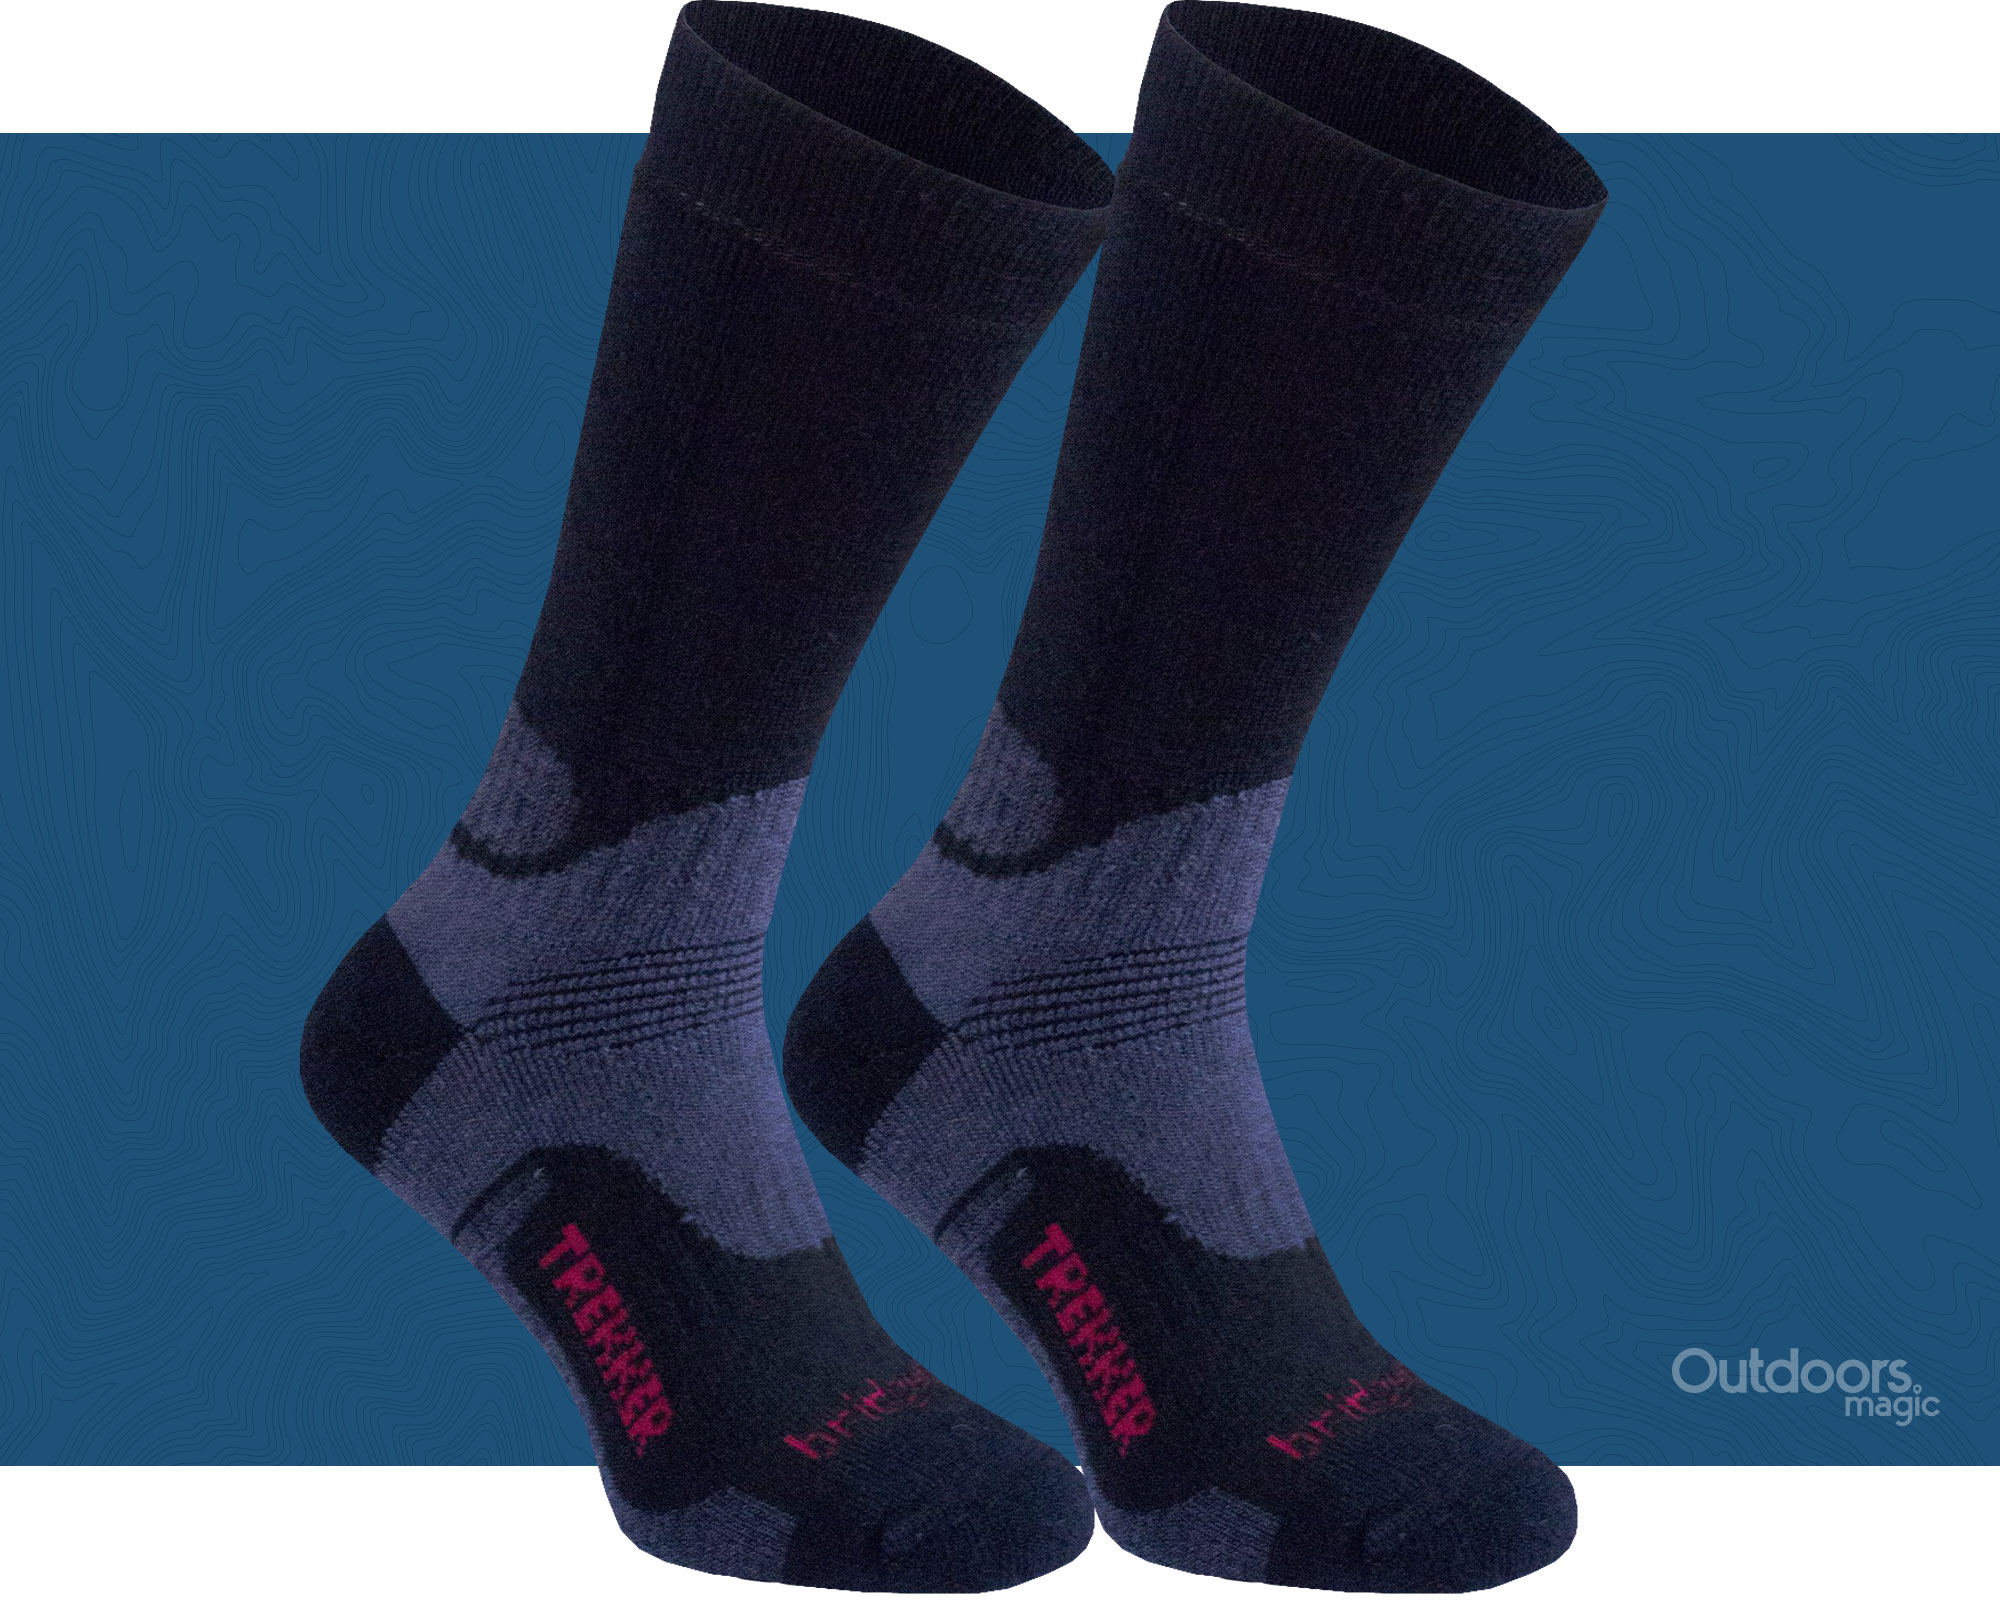 Bridgedale Womens Hike Midweight Merino Walking Socks